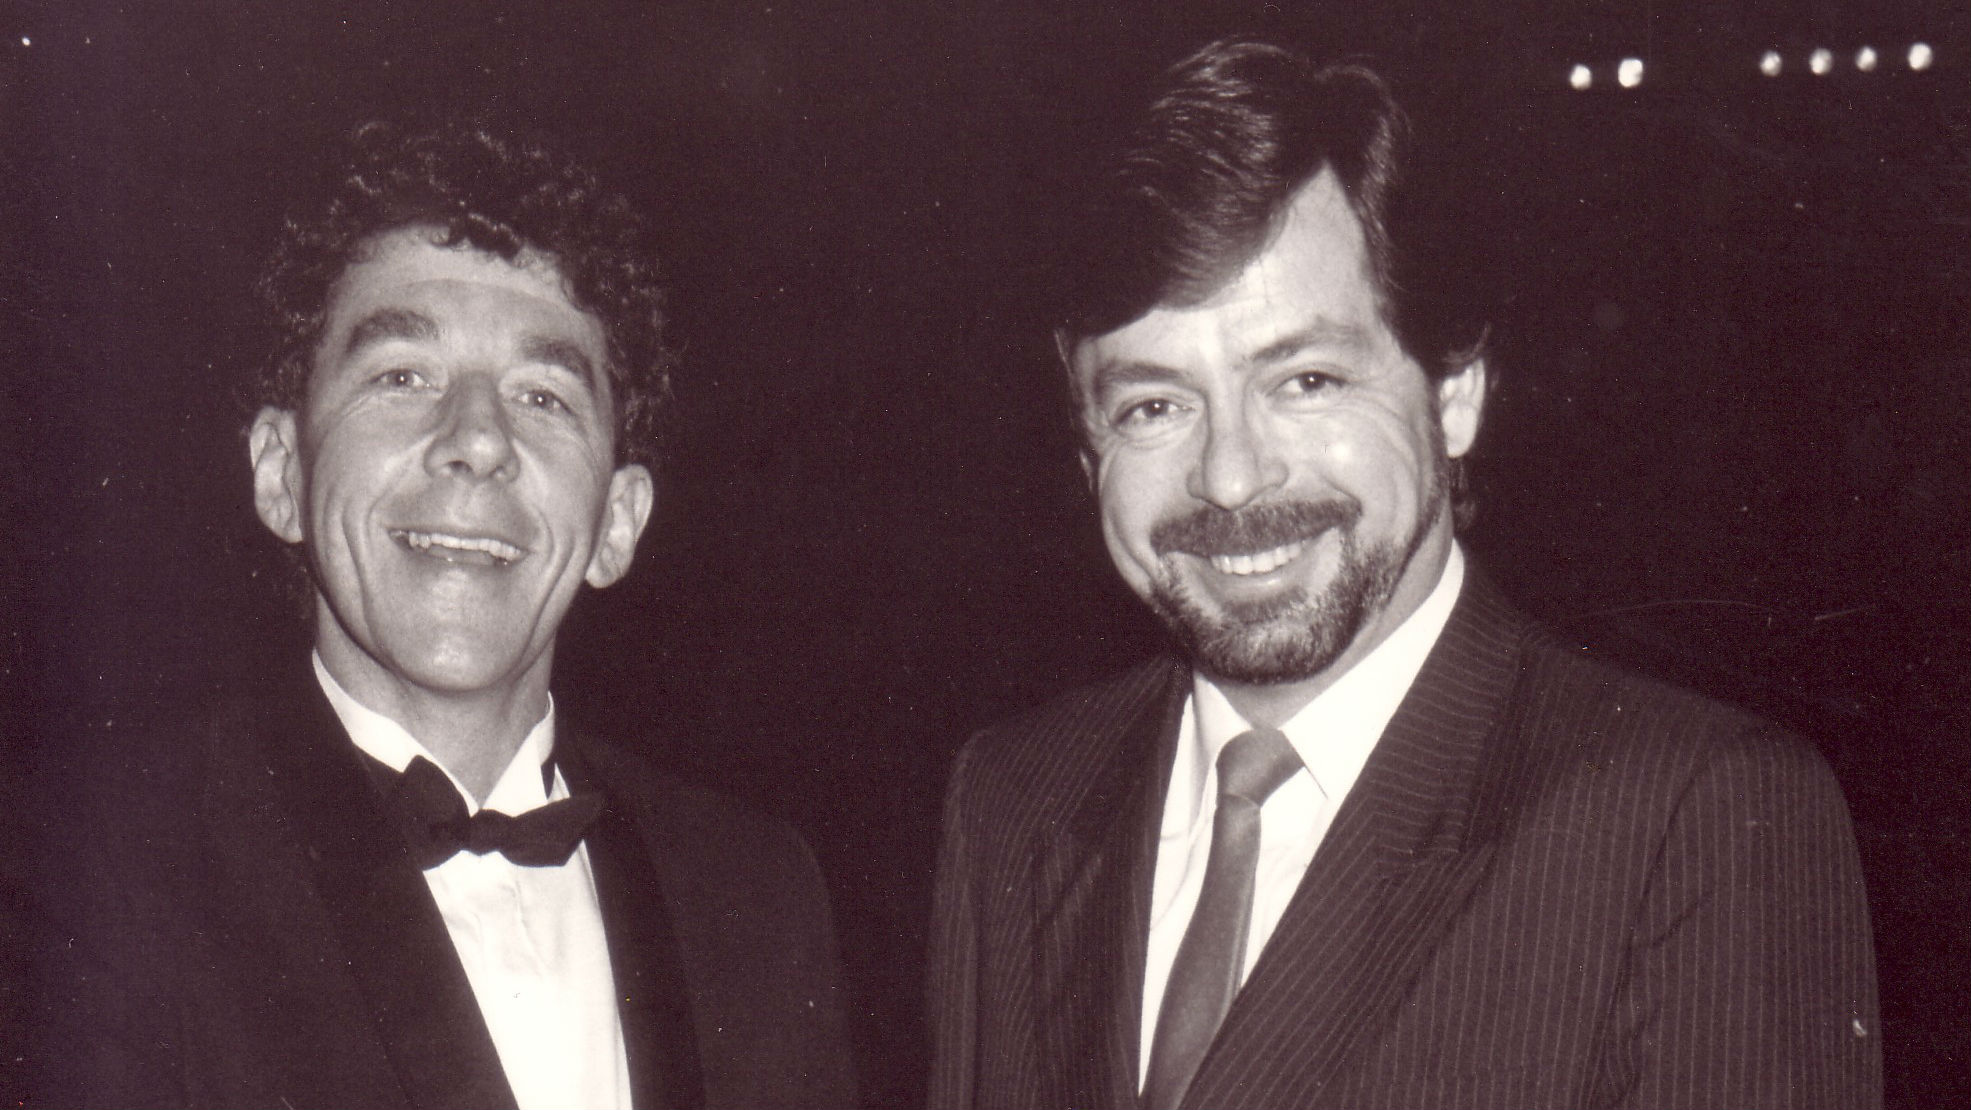 Legendary Newstalk ZB broadcasters, the late Sir Paul Holmes and Leighton Smith, pictured together in 1989.